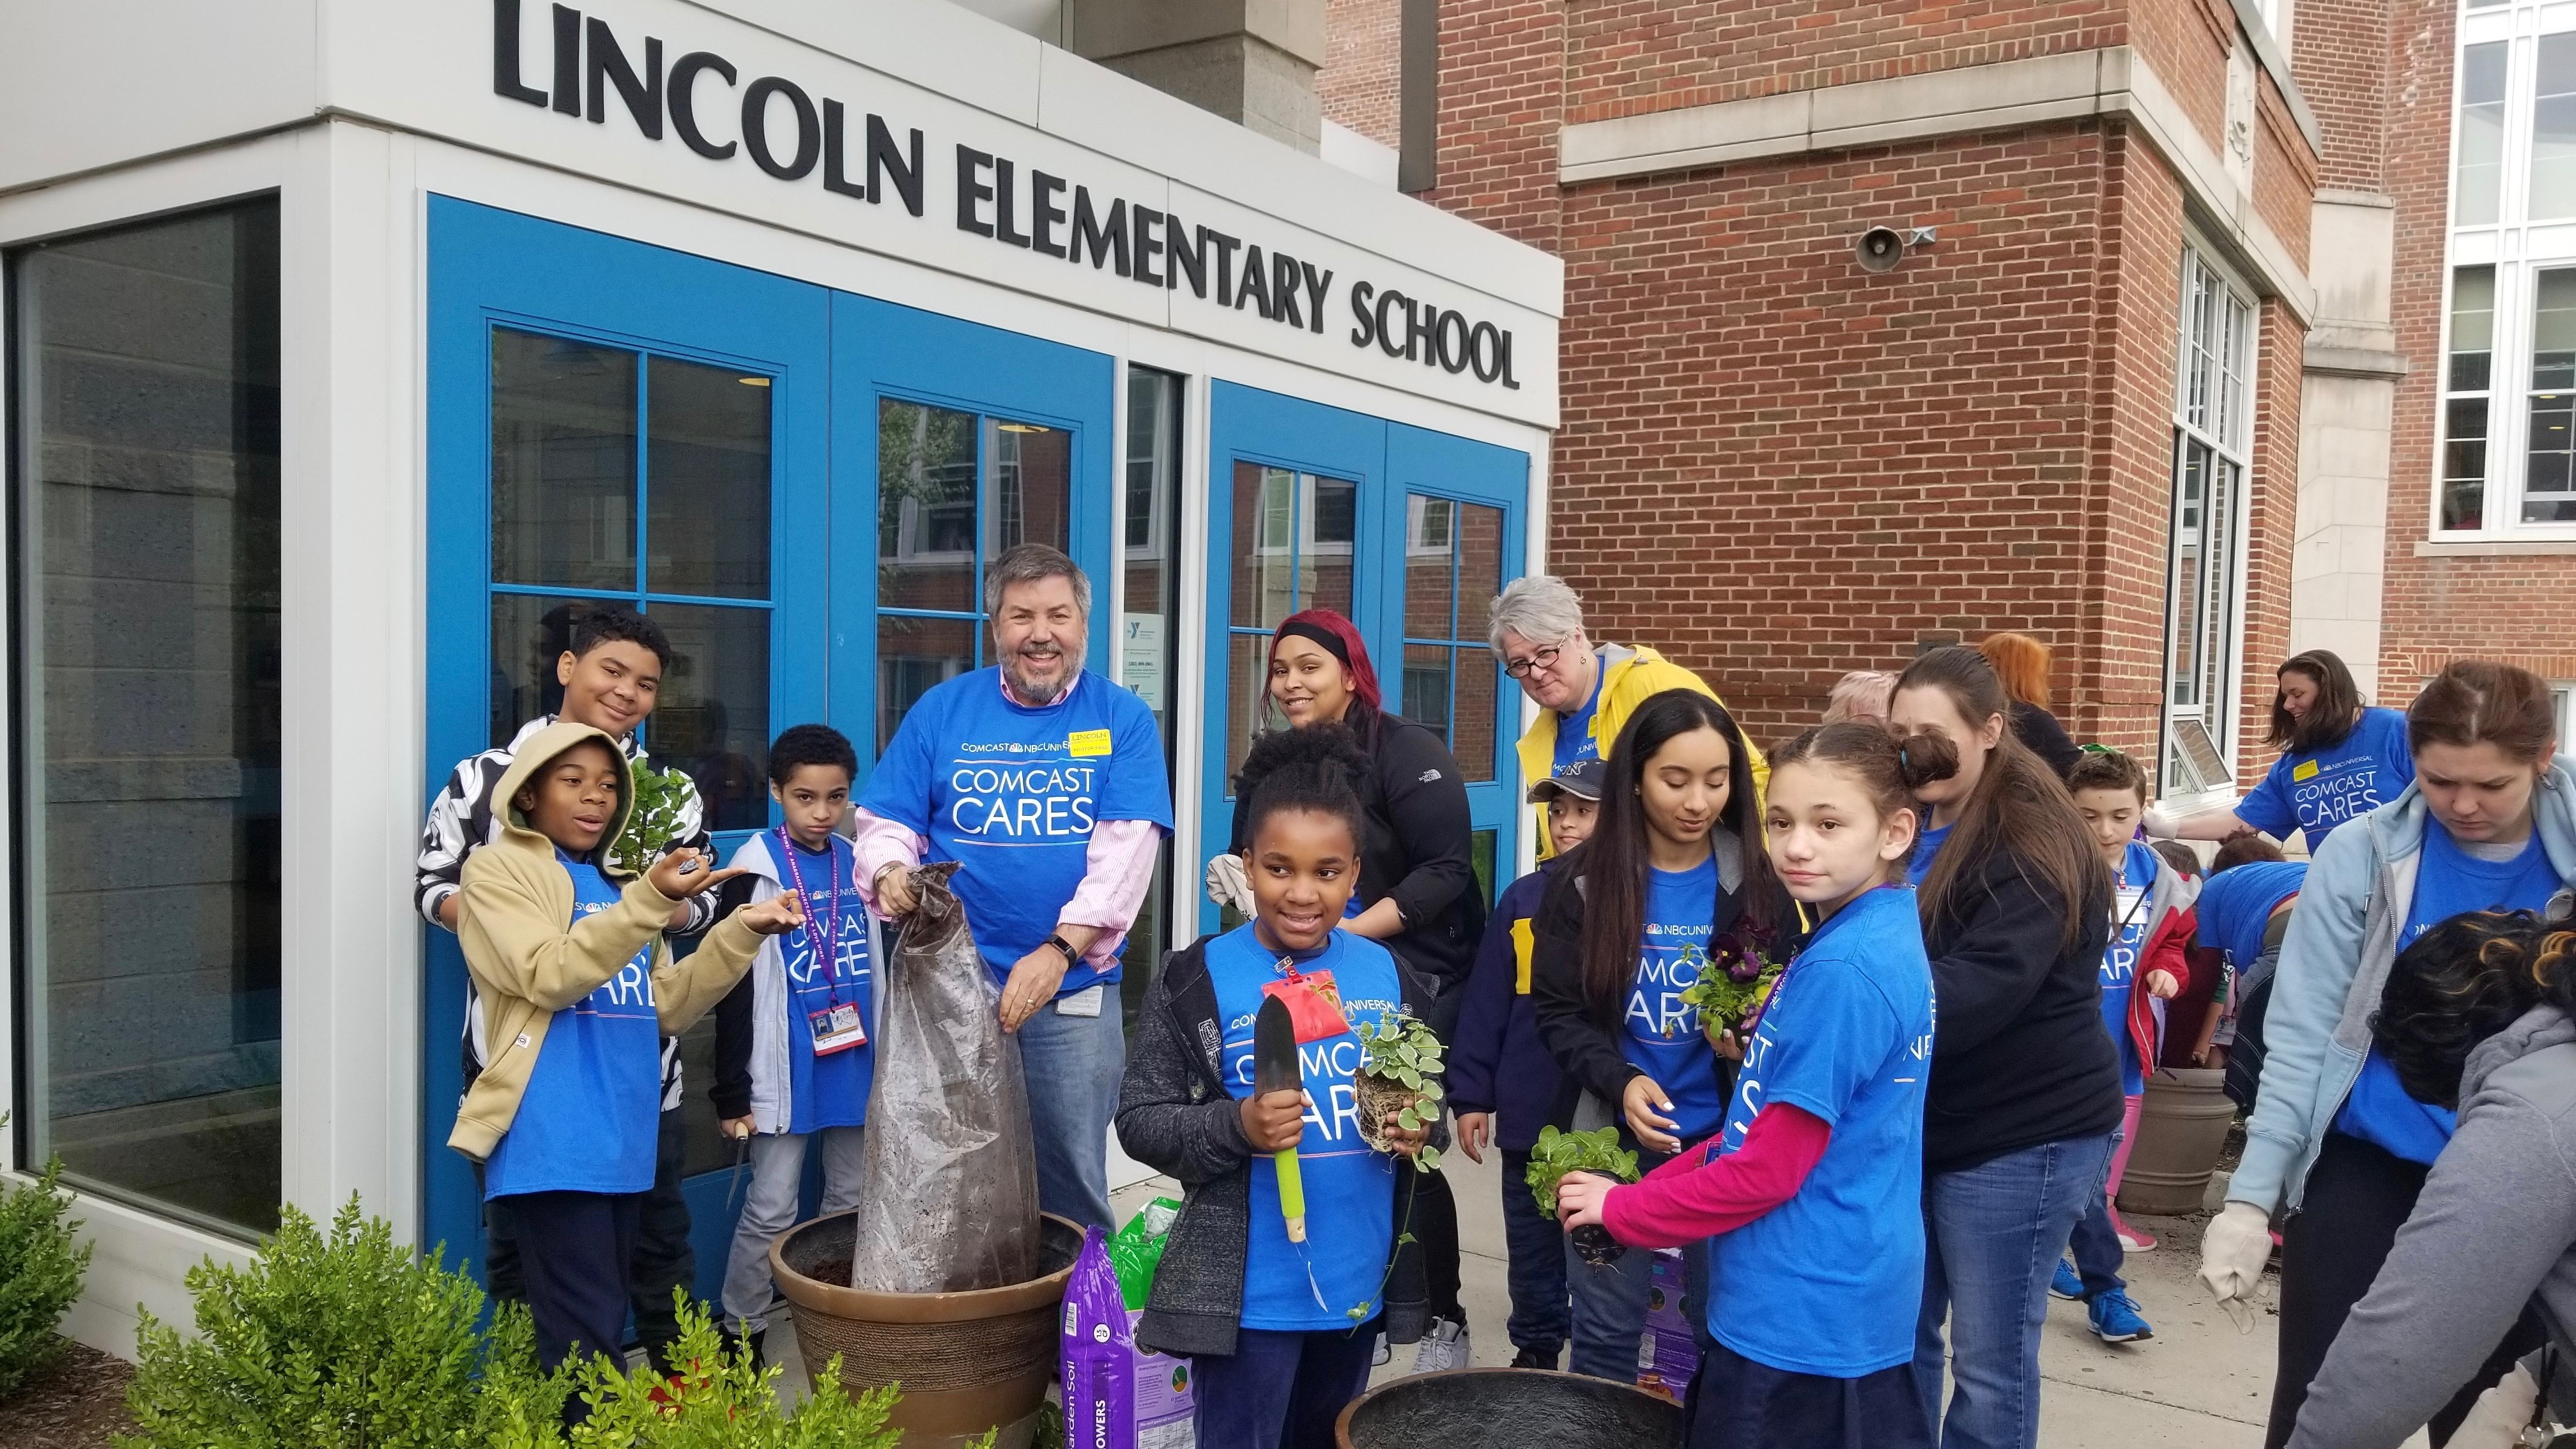 Young Comcast Cares Day volunteers stand outside of Lincoln Elementary School.